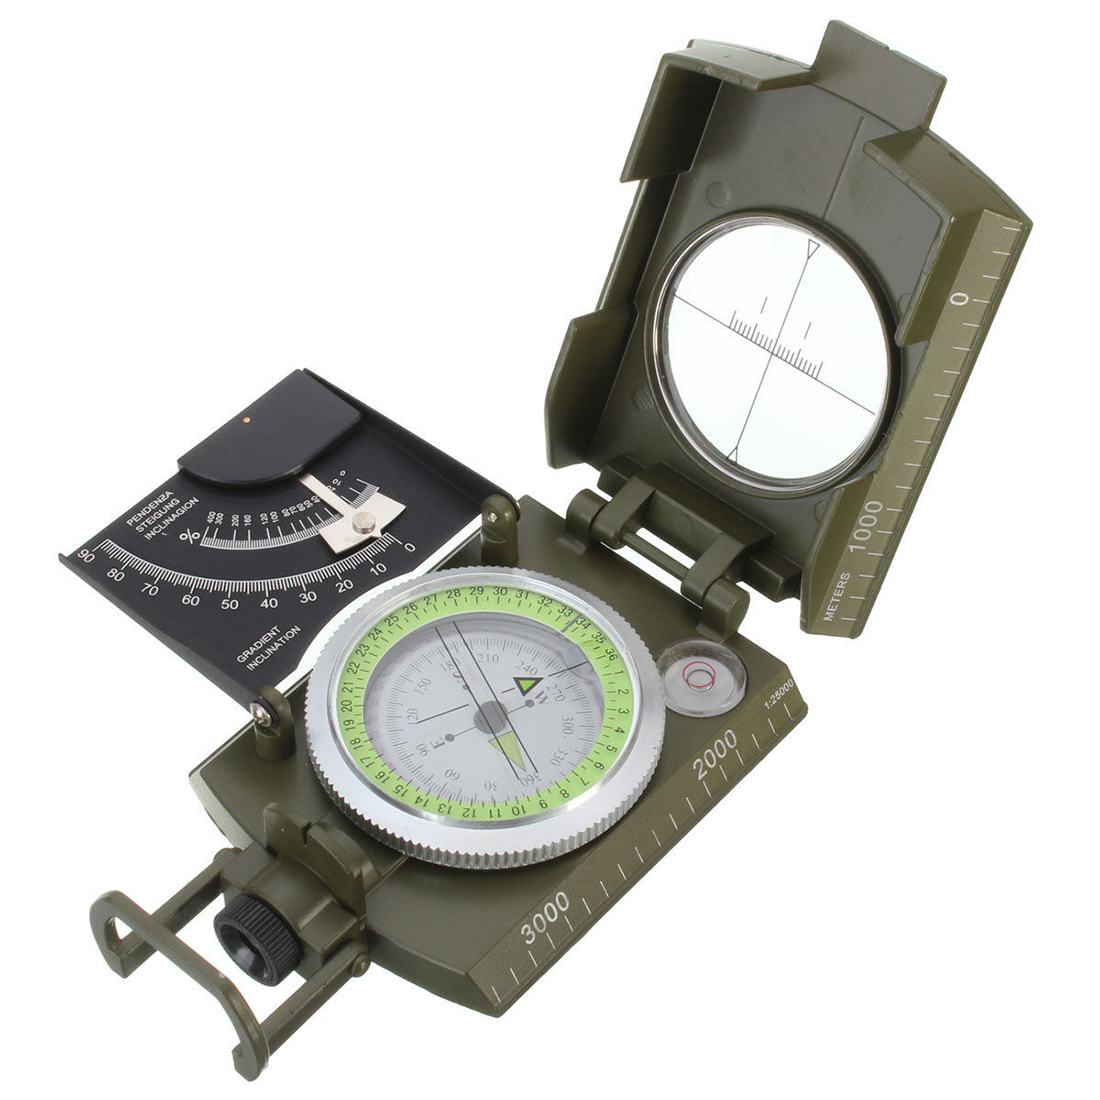 2018 New Professional Military Army Metal Sighting Compass clinometer Camping